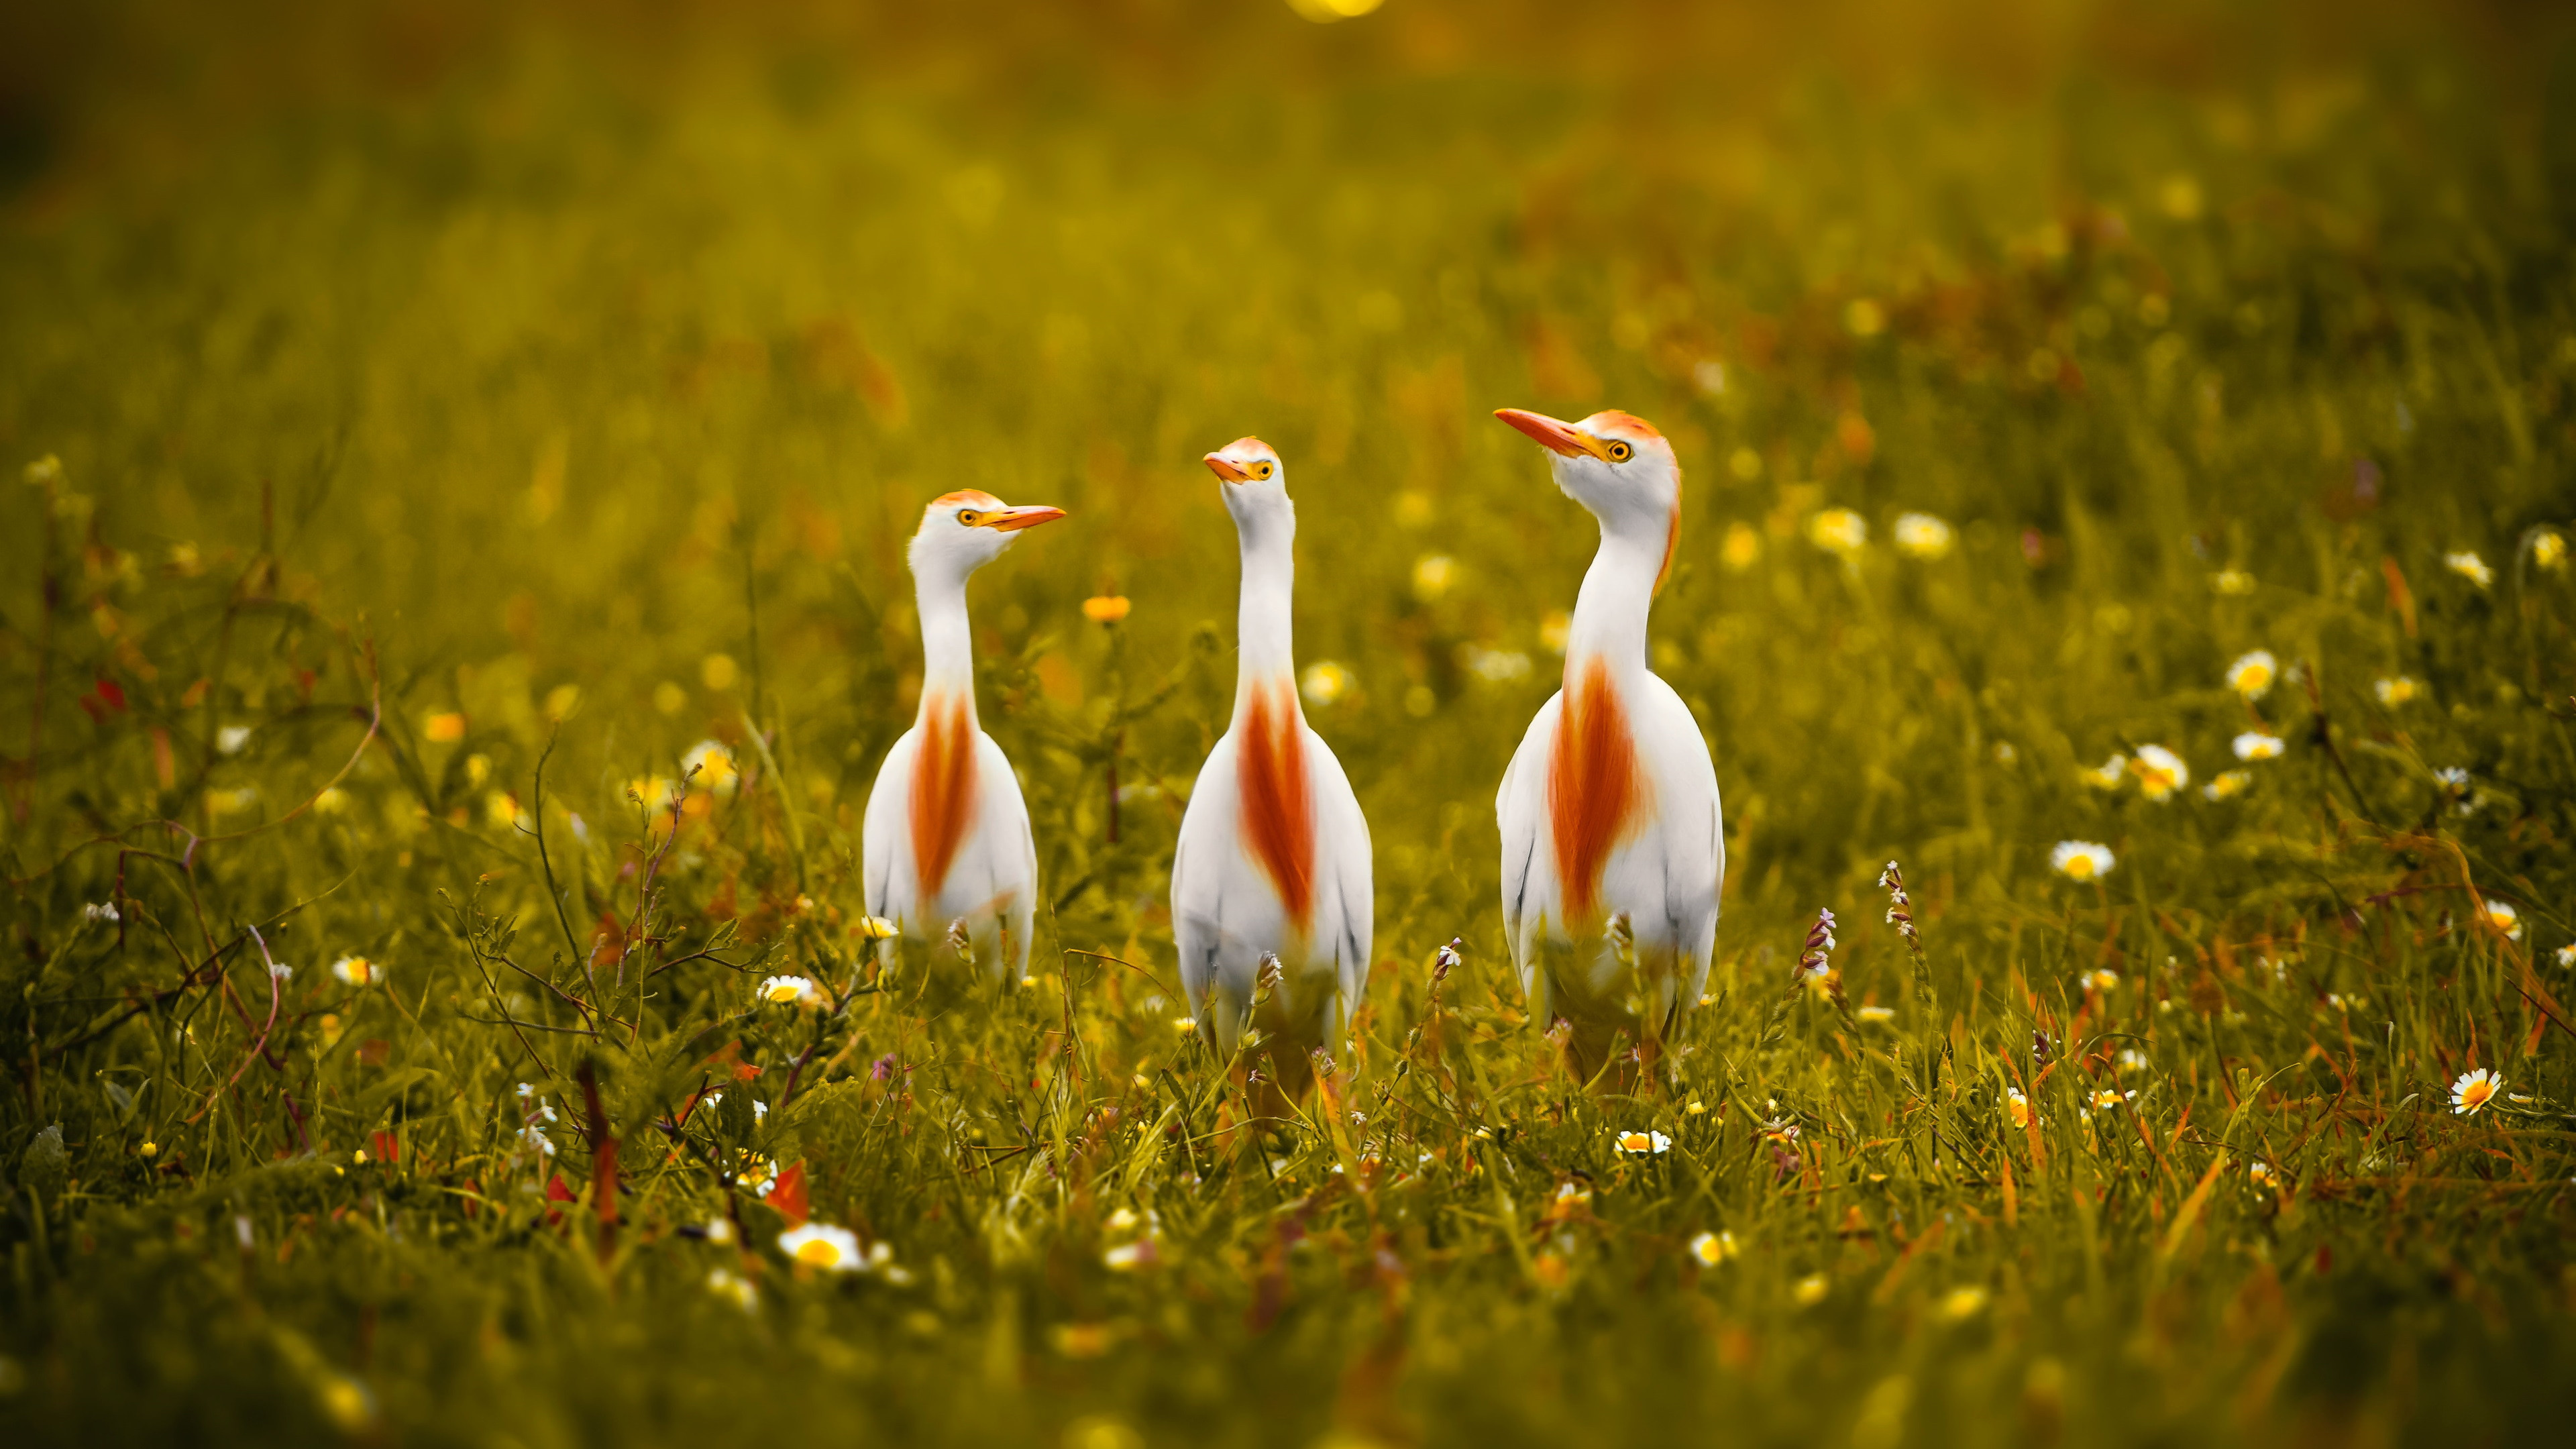 White and orange storks wallpaper 3840x2160